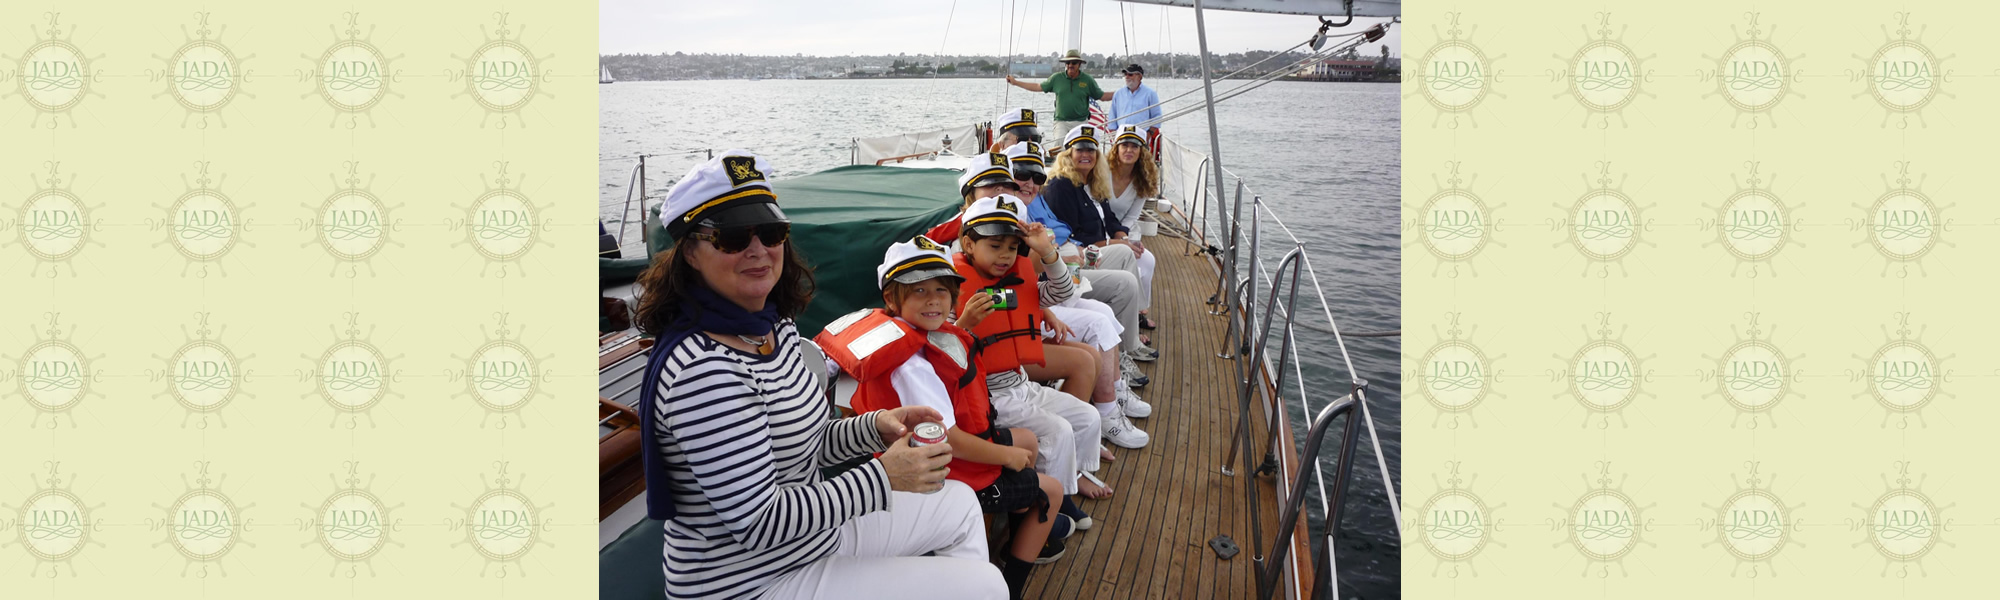 public_charter_family_fun_on_sail_jada